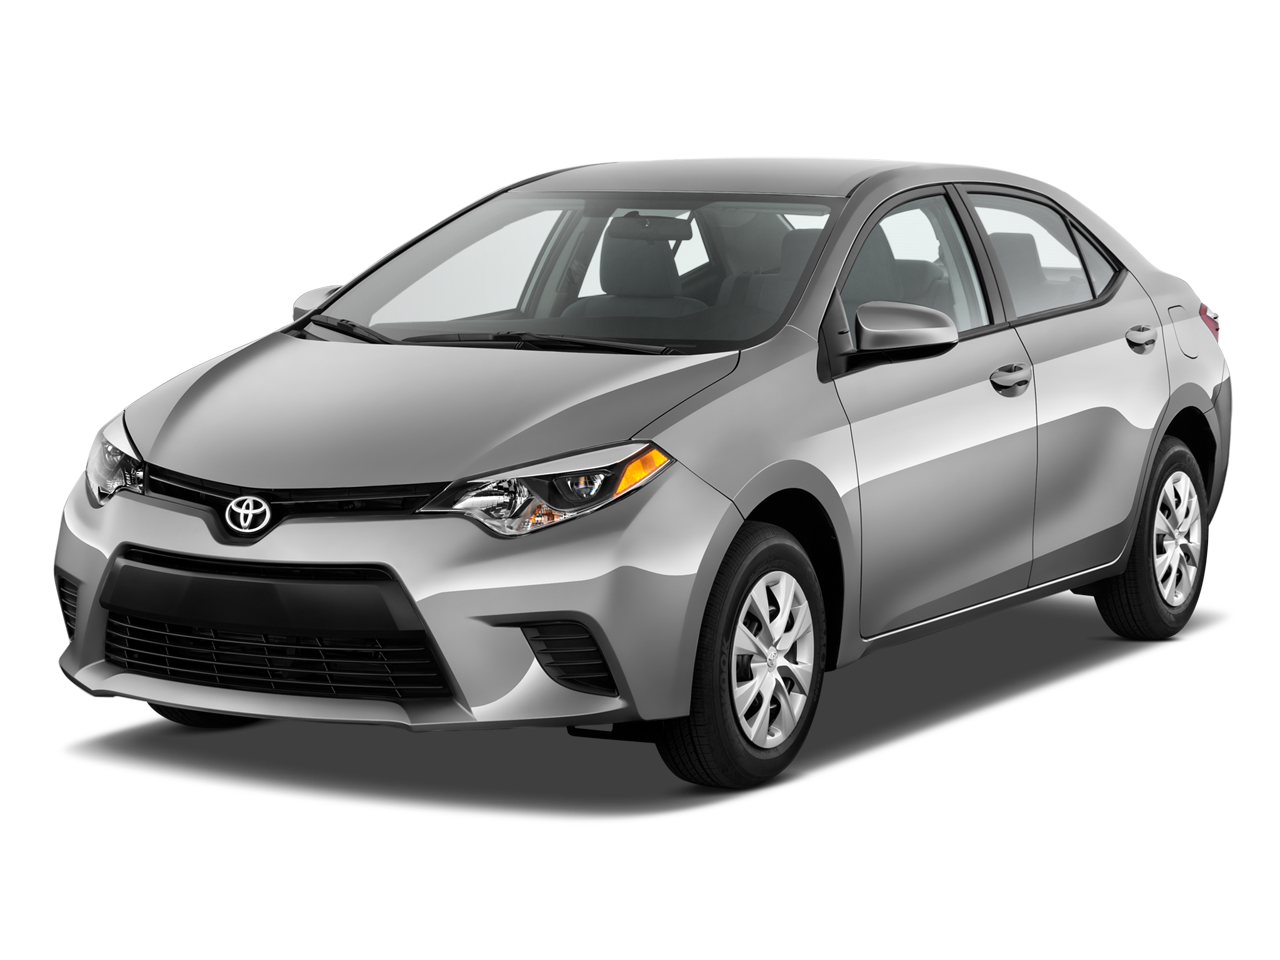 Download PNG Image - Toyota Clipart 644-Download PNG image - Toyota Clipart 644-4